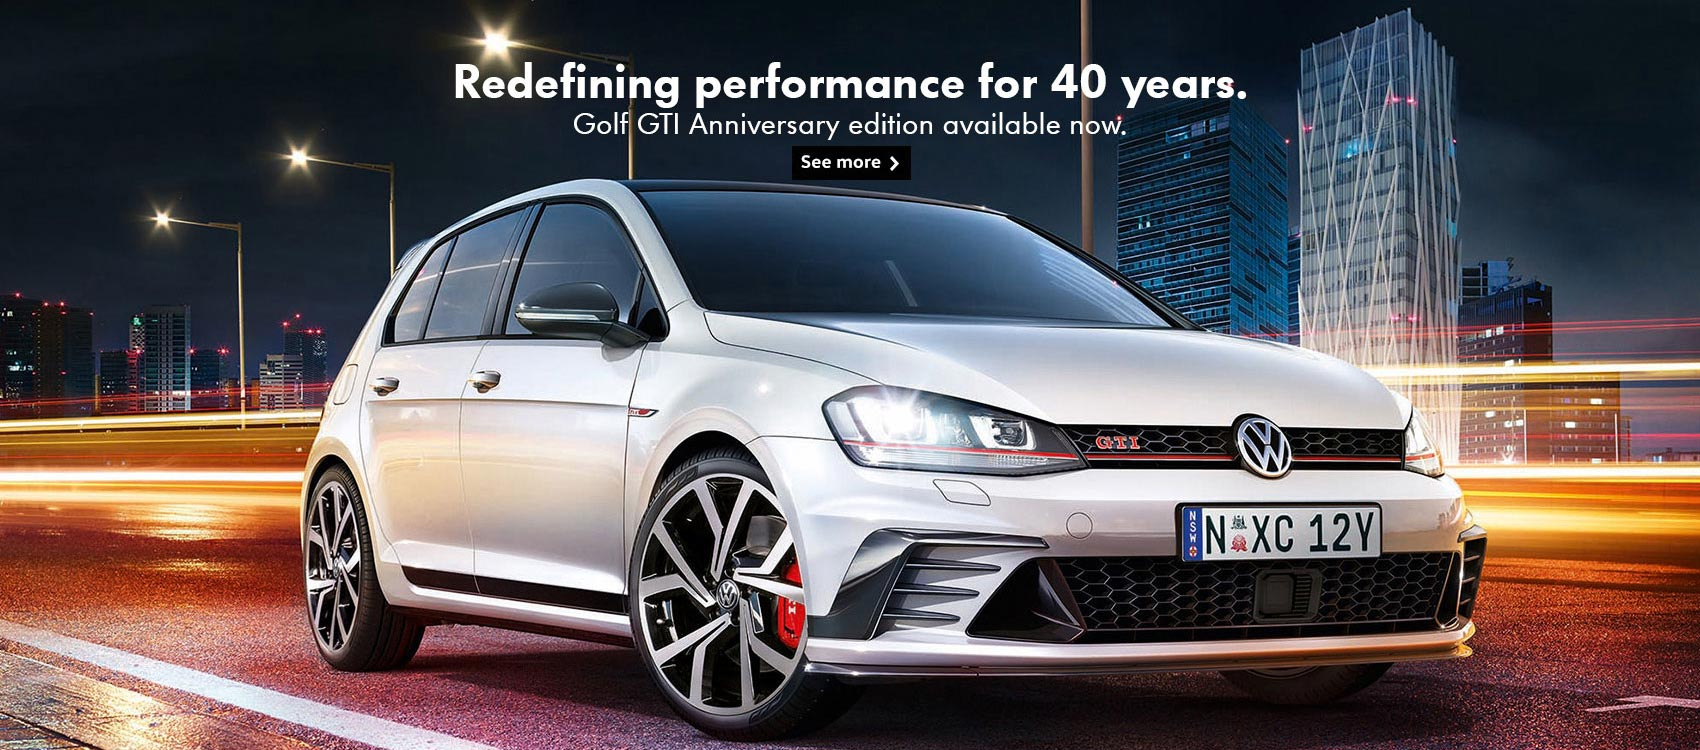 Redefining performance for 40 years, Golf GTi Anniversary Edition available now.